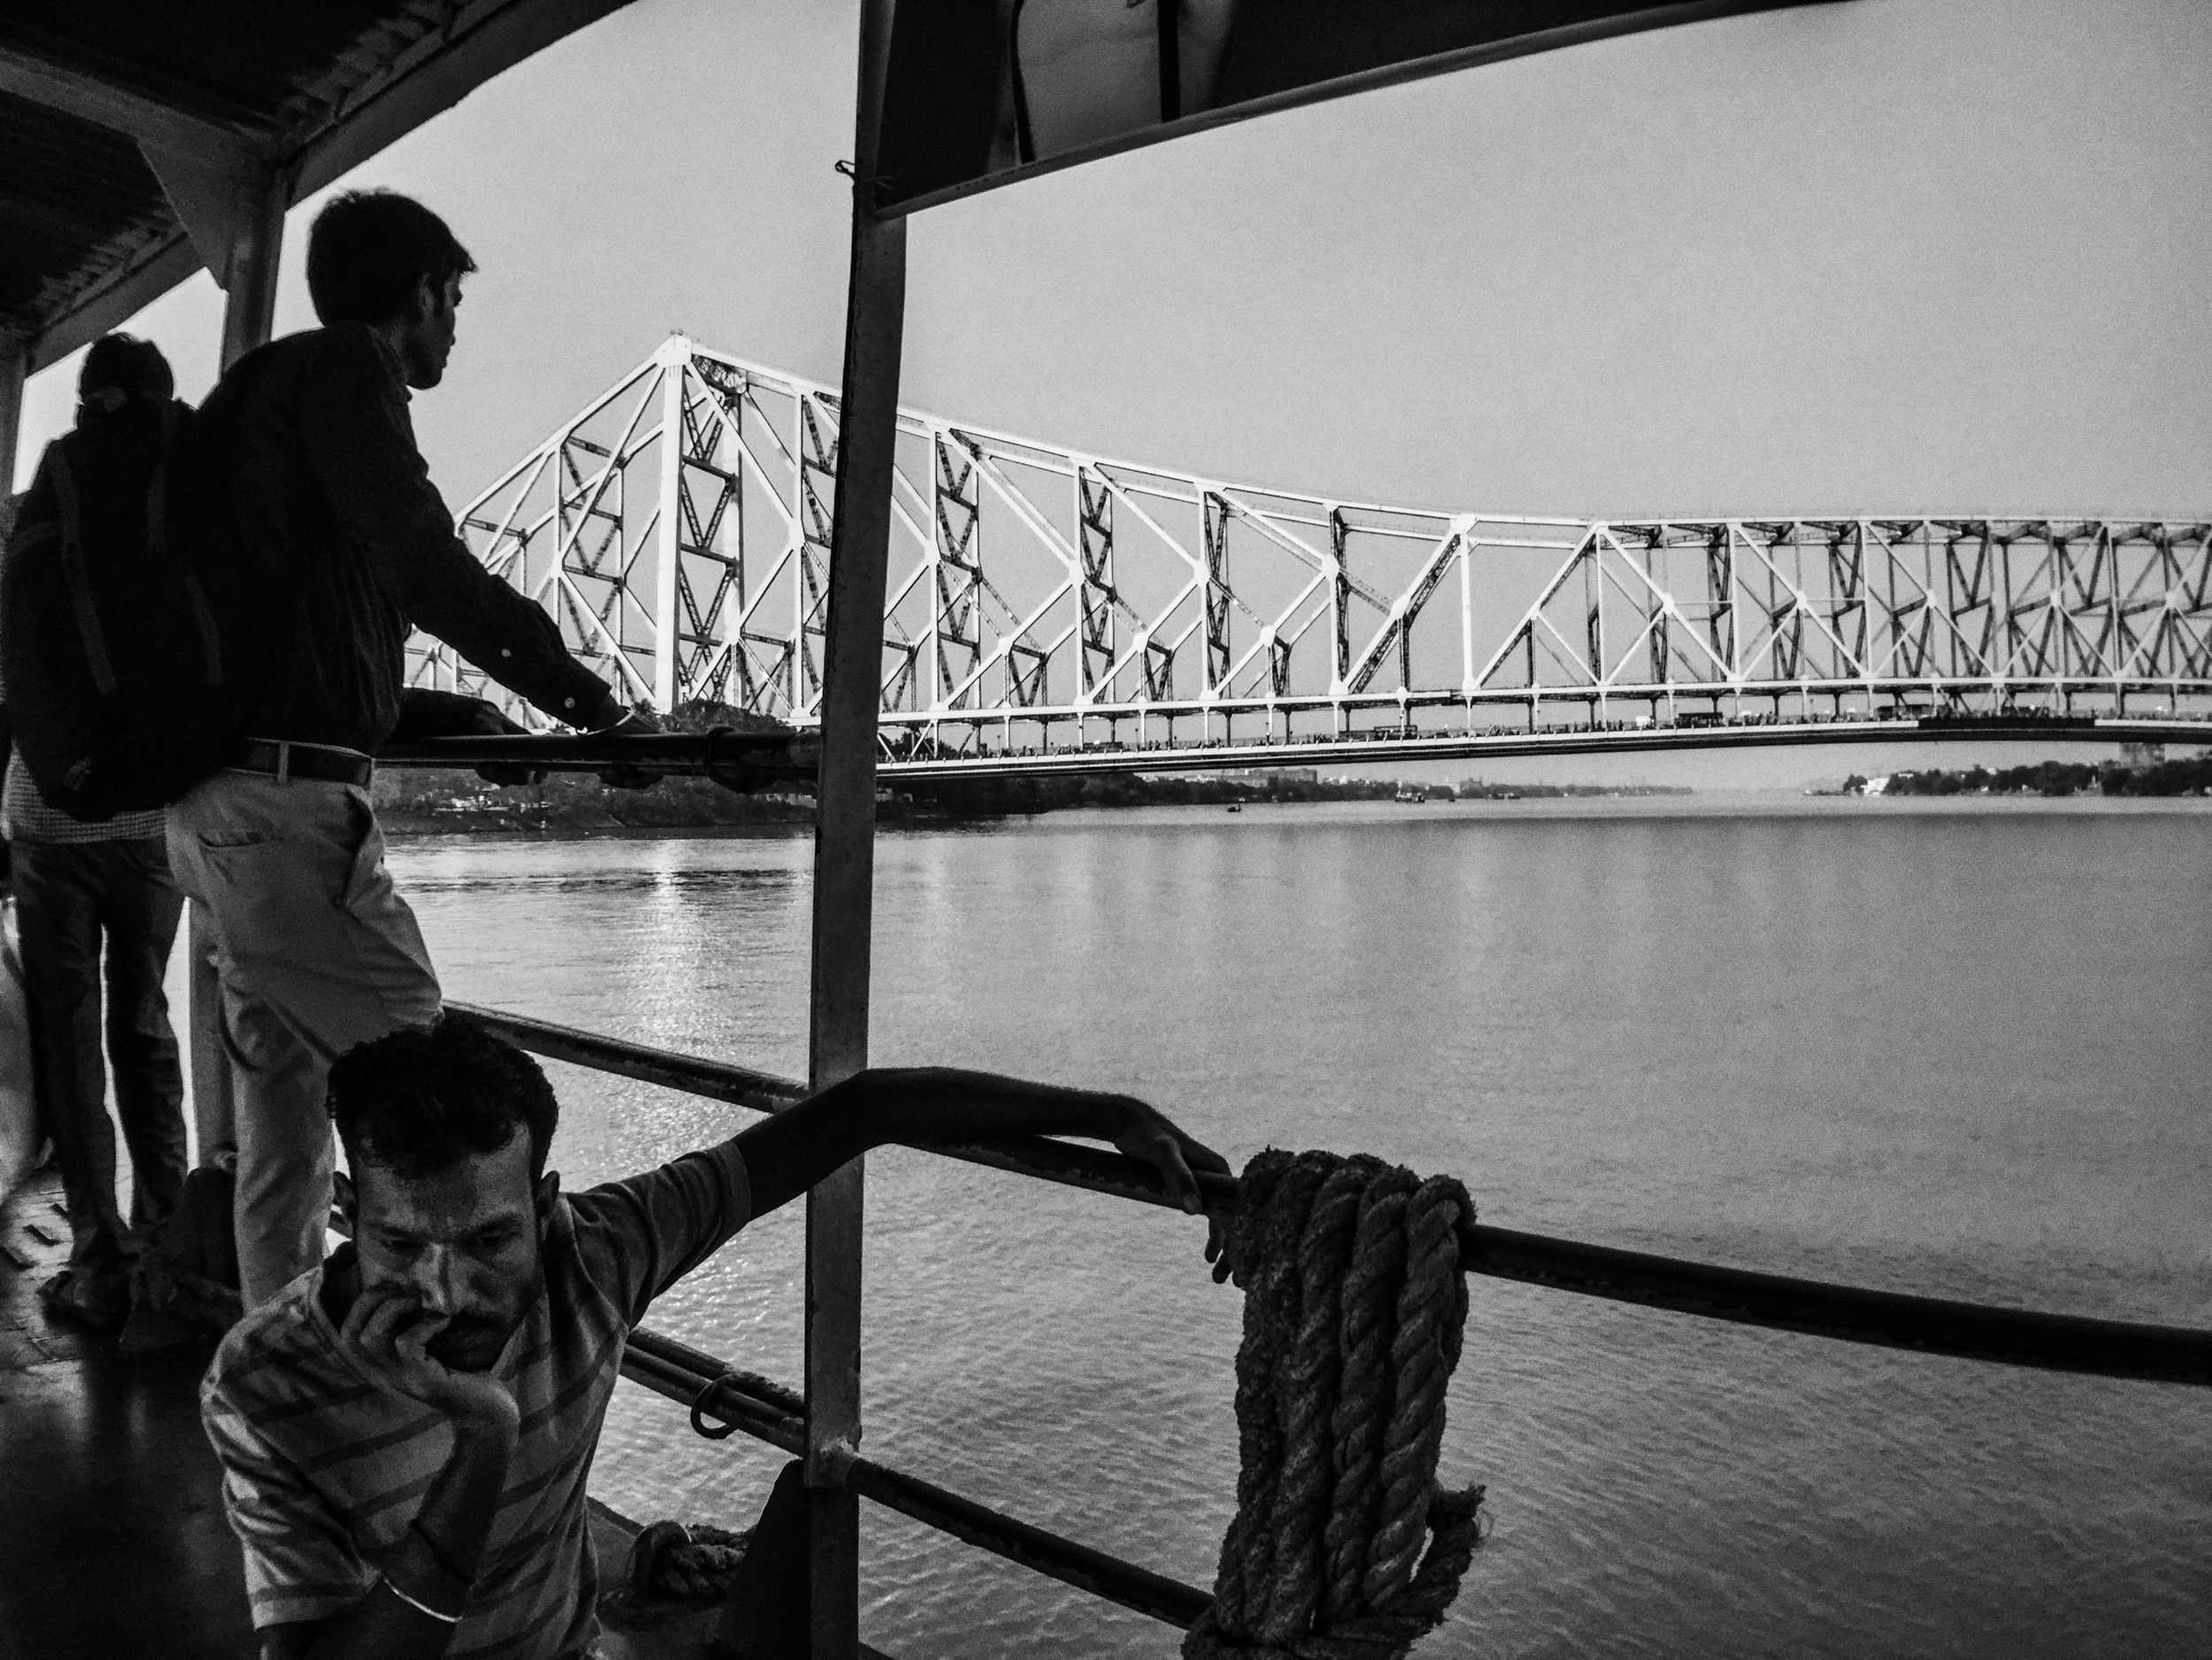 The classic ferry ride across the Hoogly RIver in Kolkata. Shot on iPhone 6 with the IMVIO Wide lens.